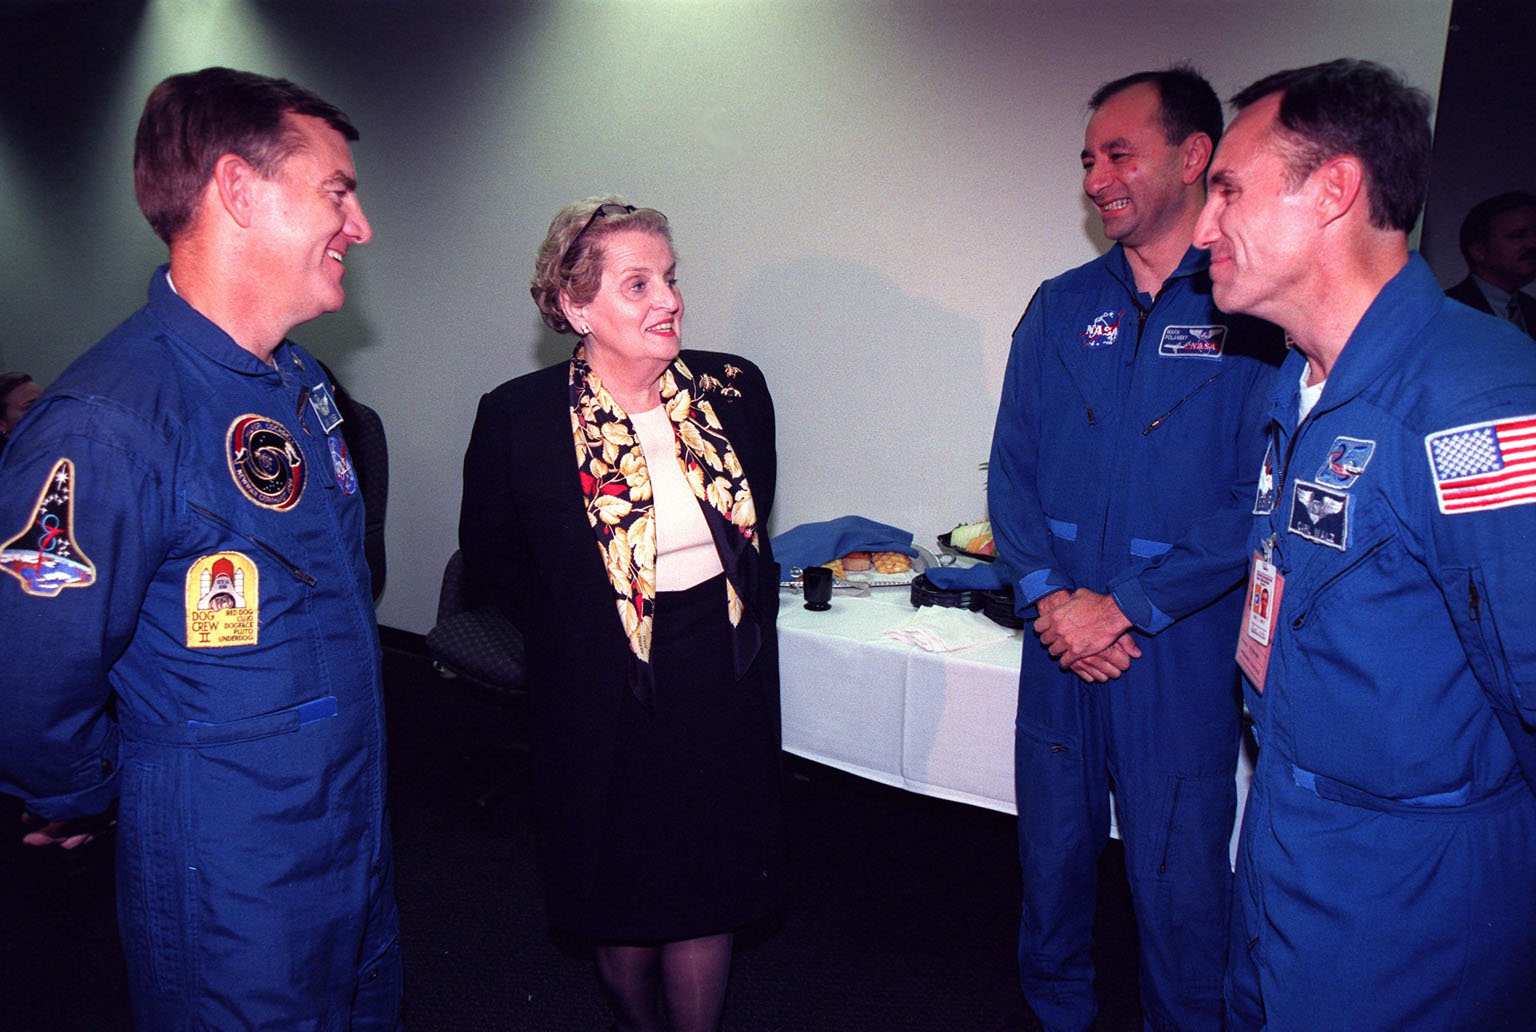 Following the successful launch of the STS-88 crew aboard Endeavour from Launch Pad 39A at 3:35:34 a.m. EST, U.S. Secretary of State Madeleine Albright (second from left) talks with astronauts (left to right) Jim Voss, Mark Polansky and Carl Walz. STS-88 is the first U.S. mission dedicated to the assembly of the International Space Station (ISS). Voss is a member of the STS-100 crew which will be the eighth ISS assembly mission. Polansky is slated to fly on STS-98 which will be the sixth ISS assembly mission. Walz is currently assigned to fly on the ISS on the fourth long duration crew